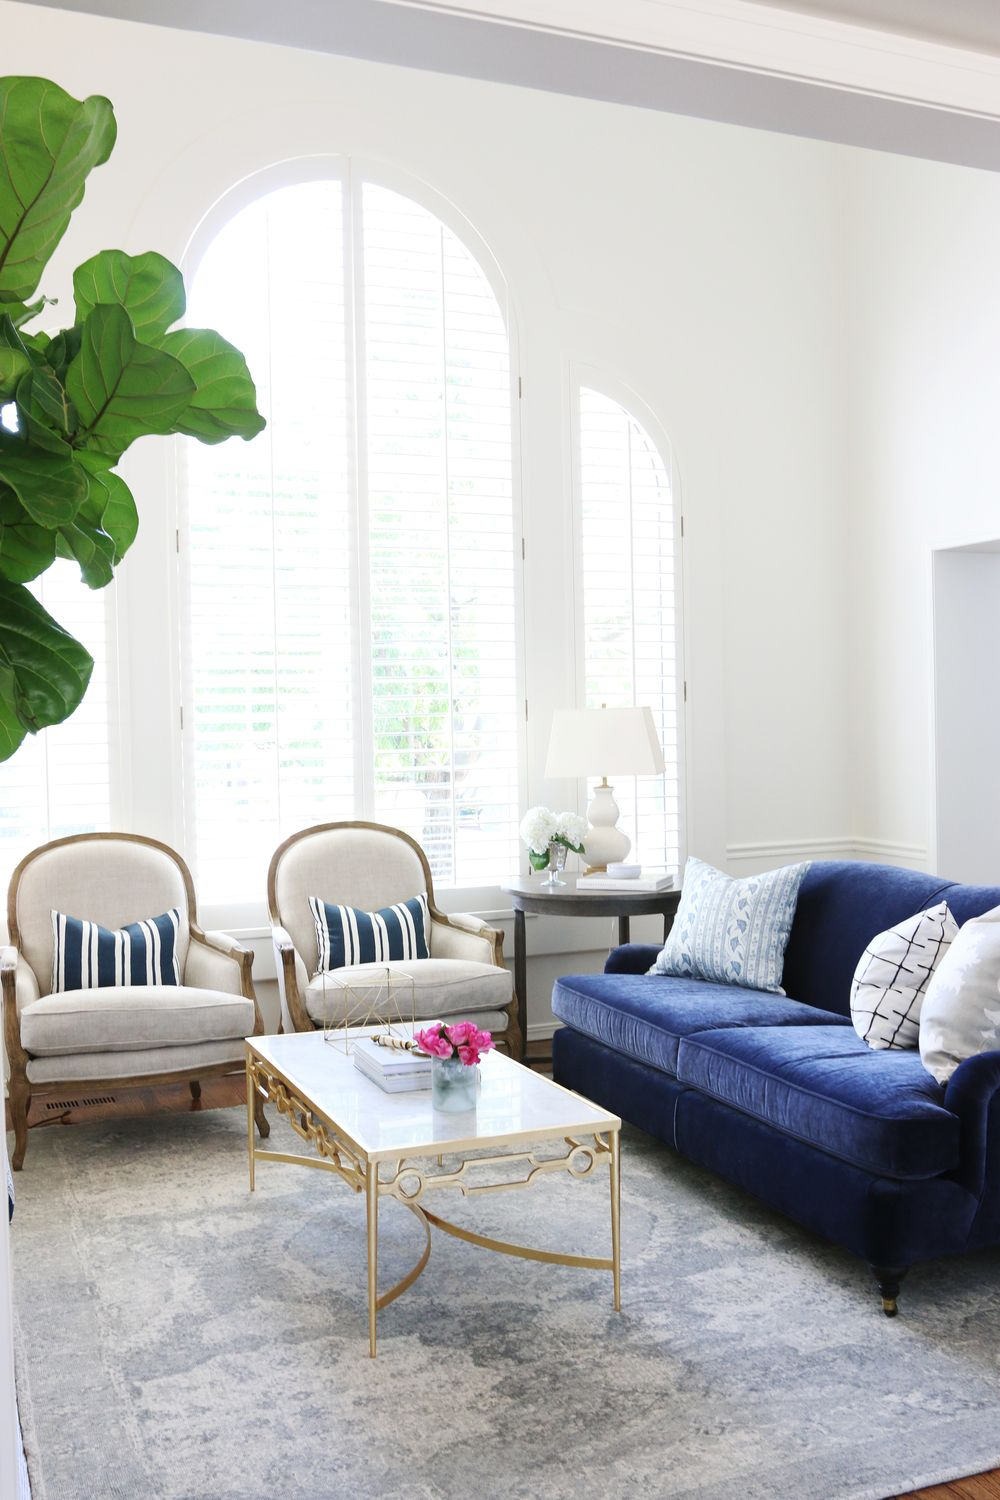 Living Room Makeover: Ryan Park Project | Pinterest | Studio mcgee ...